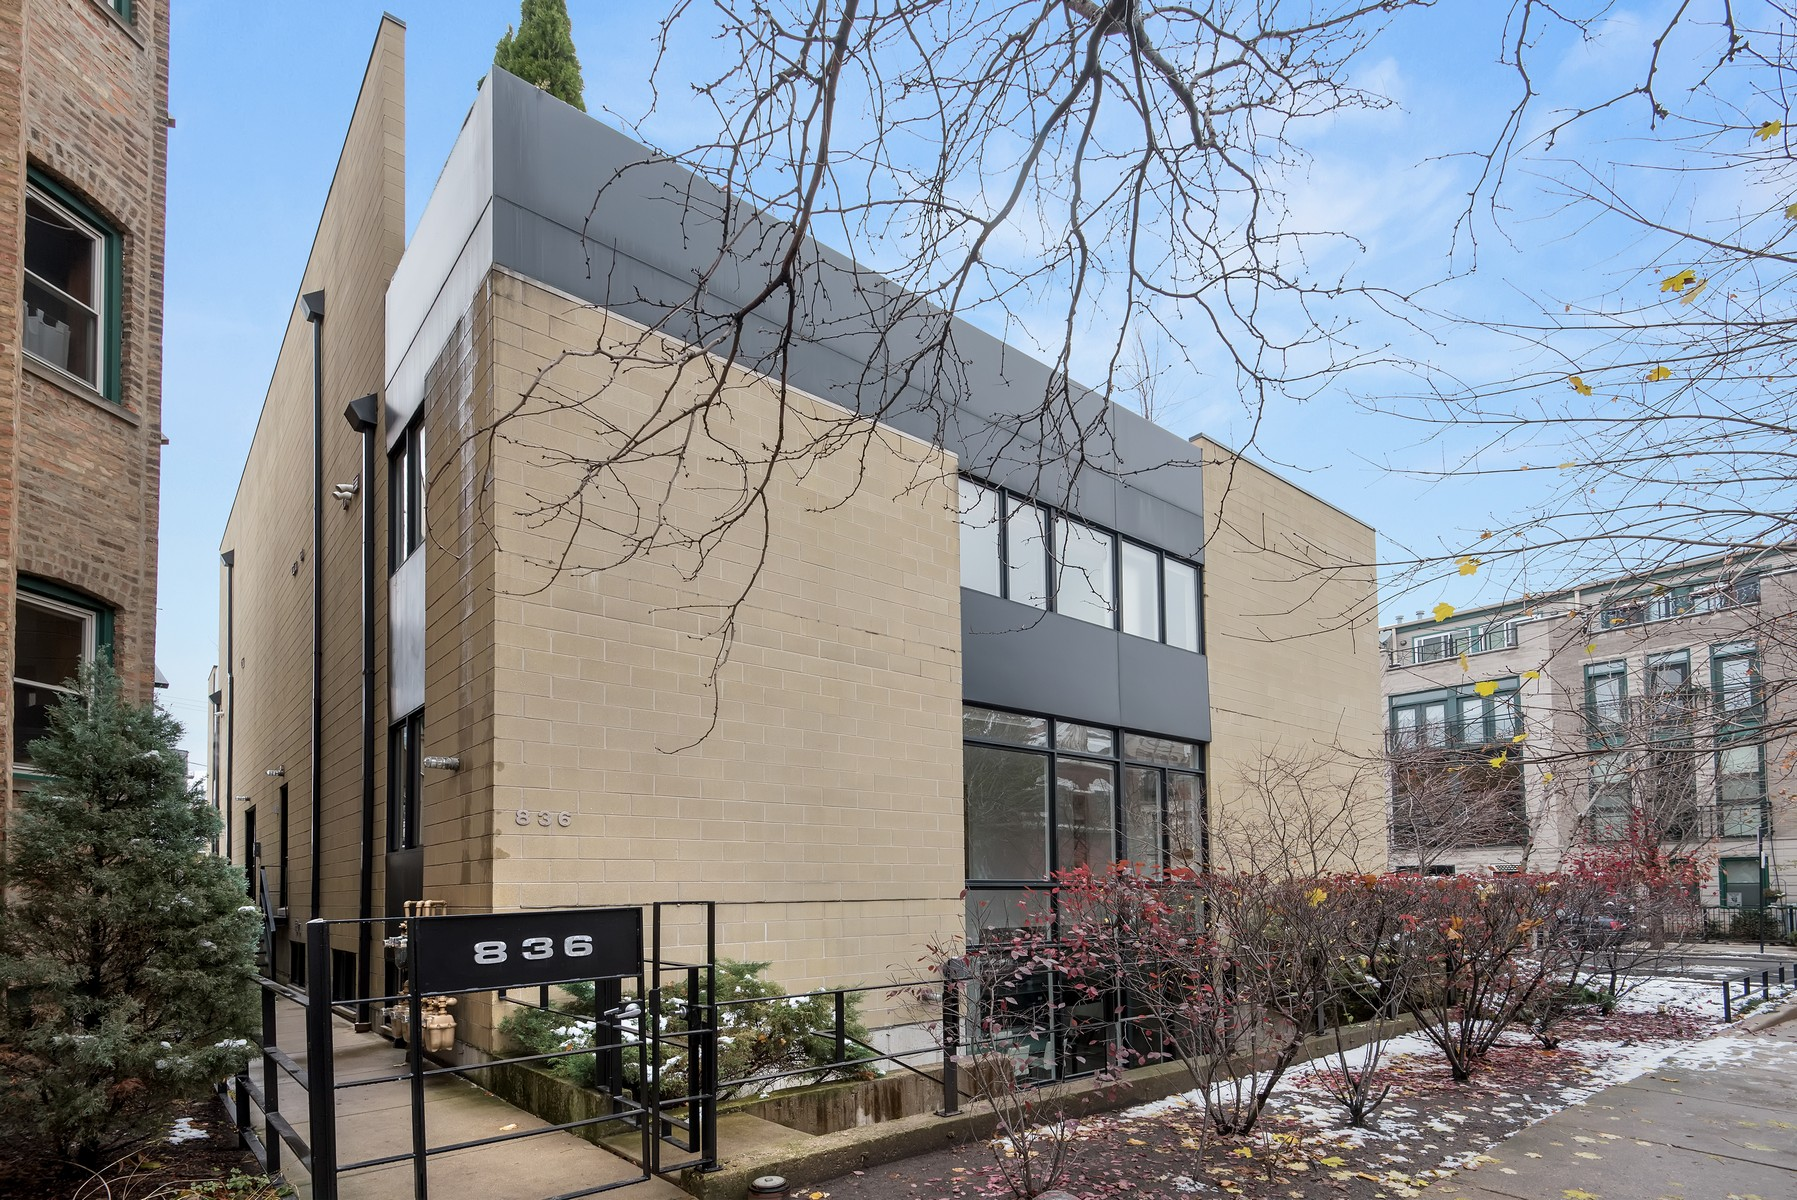 Кондоминиум для того Продажа на Stunning Duplex in Hot East Village 836 N Paulina Street Unit 101 Chicago, Иллинойс, 60622 Соединенные Штаты